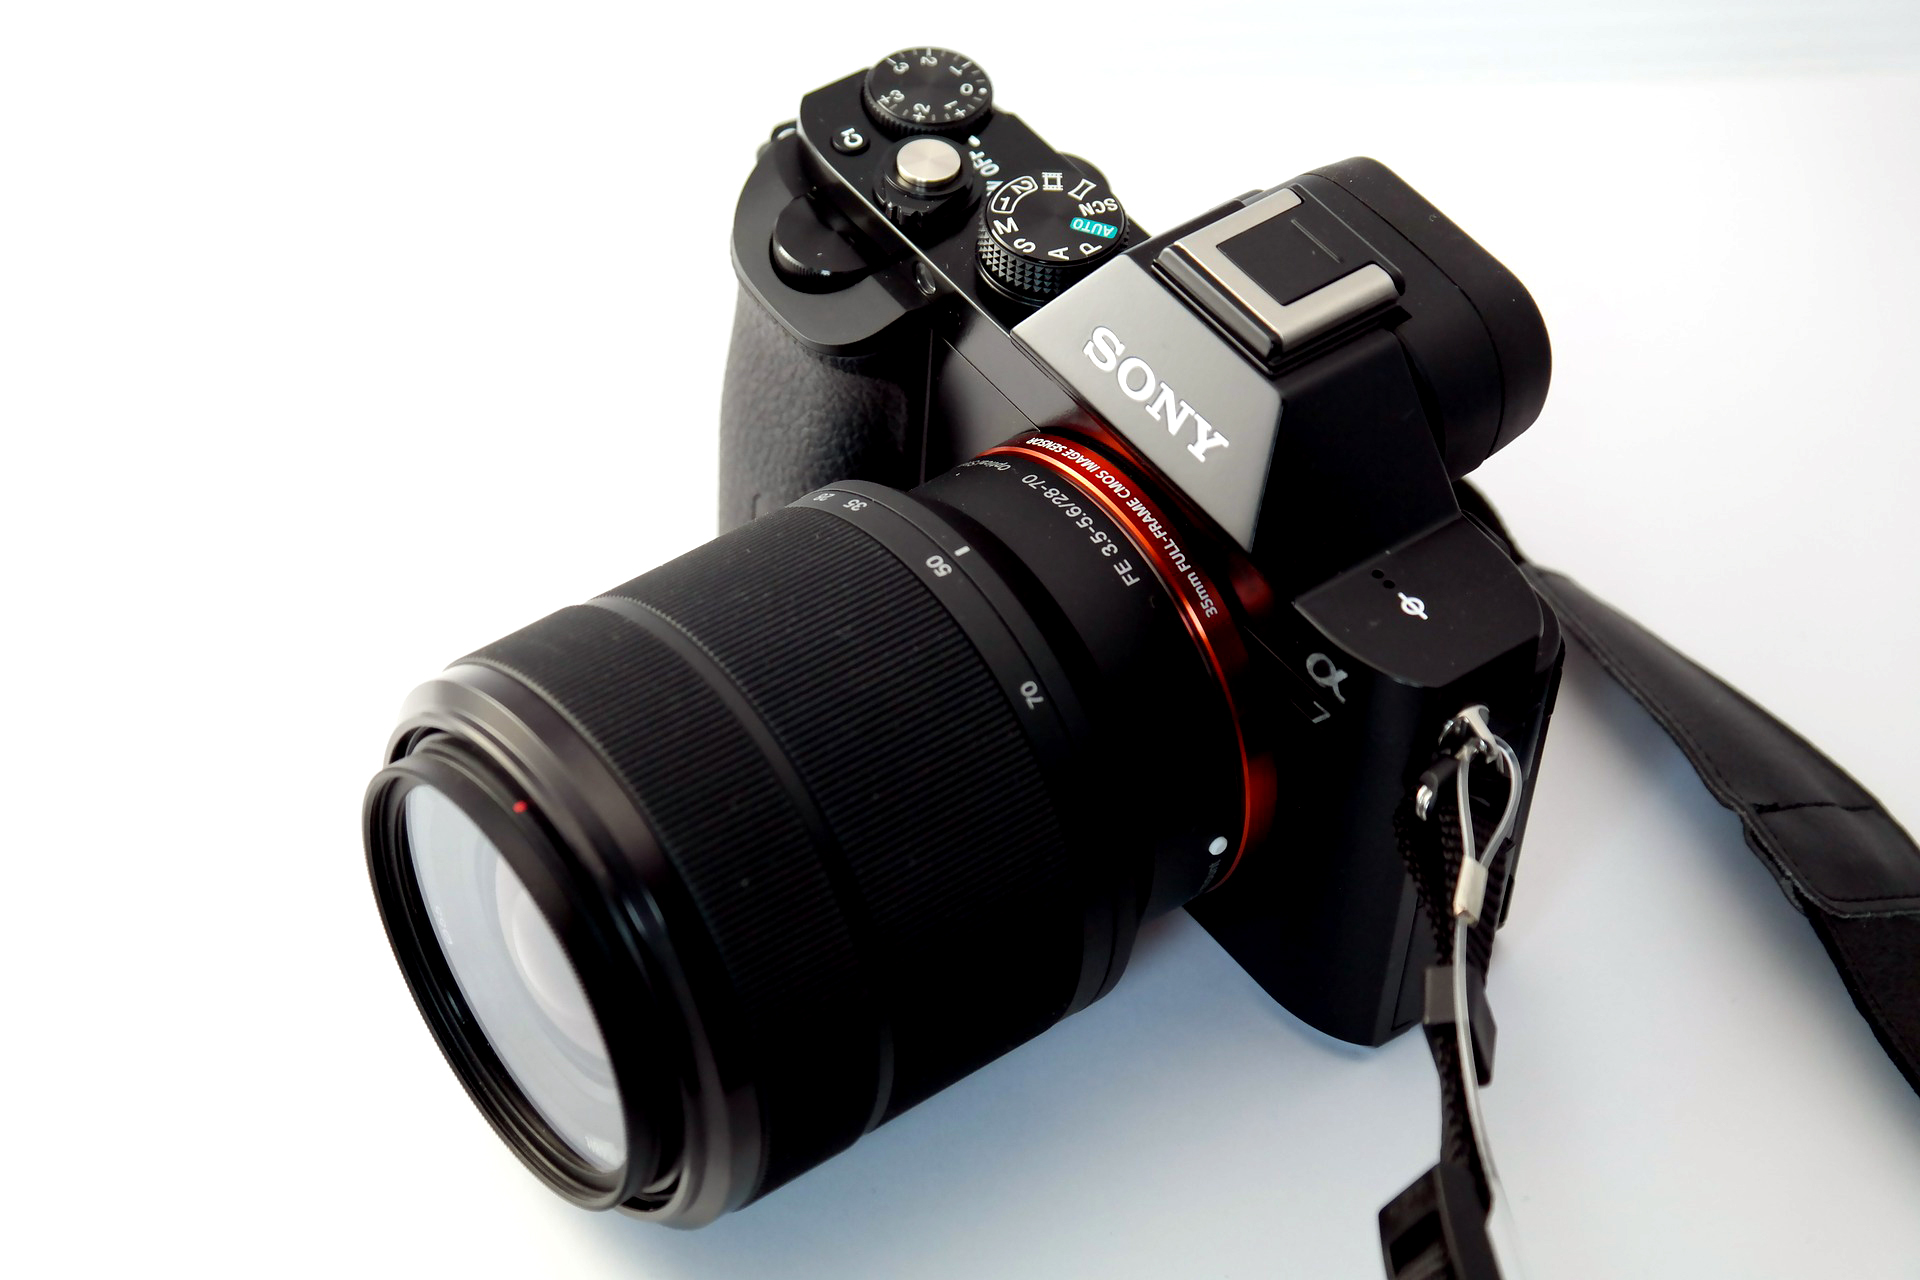 Top 5 Reasons To Consider Buying A Mirrorless Camera